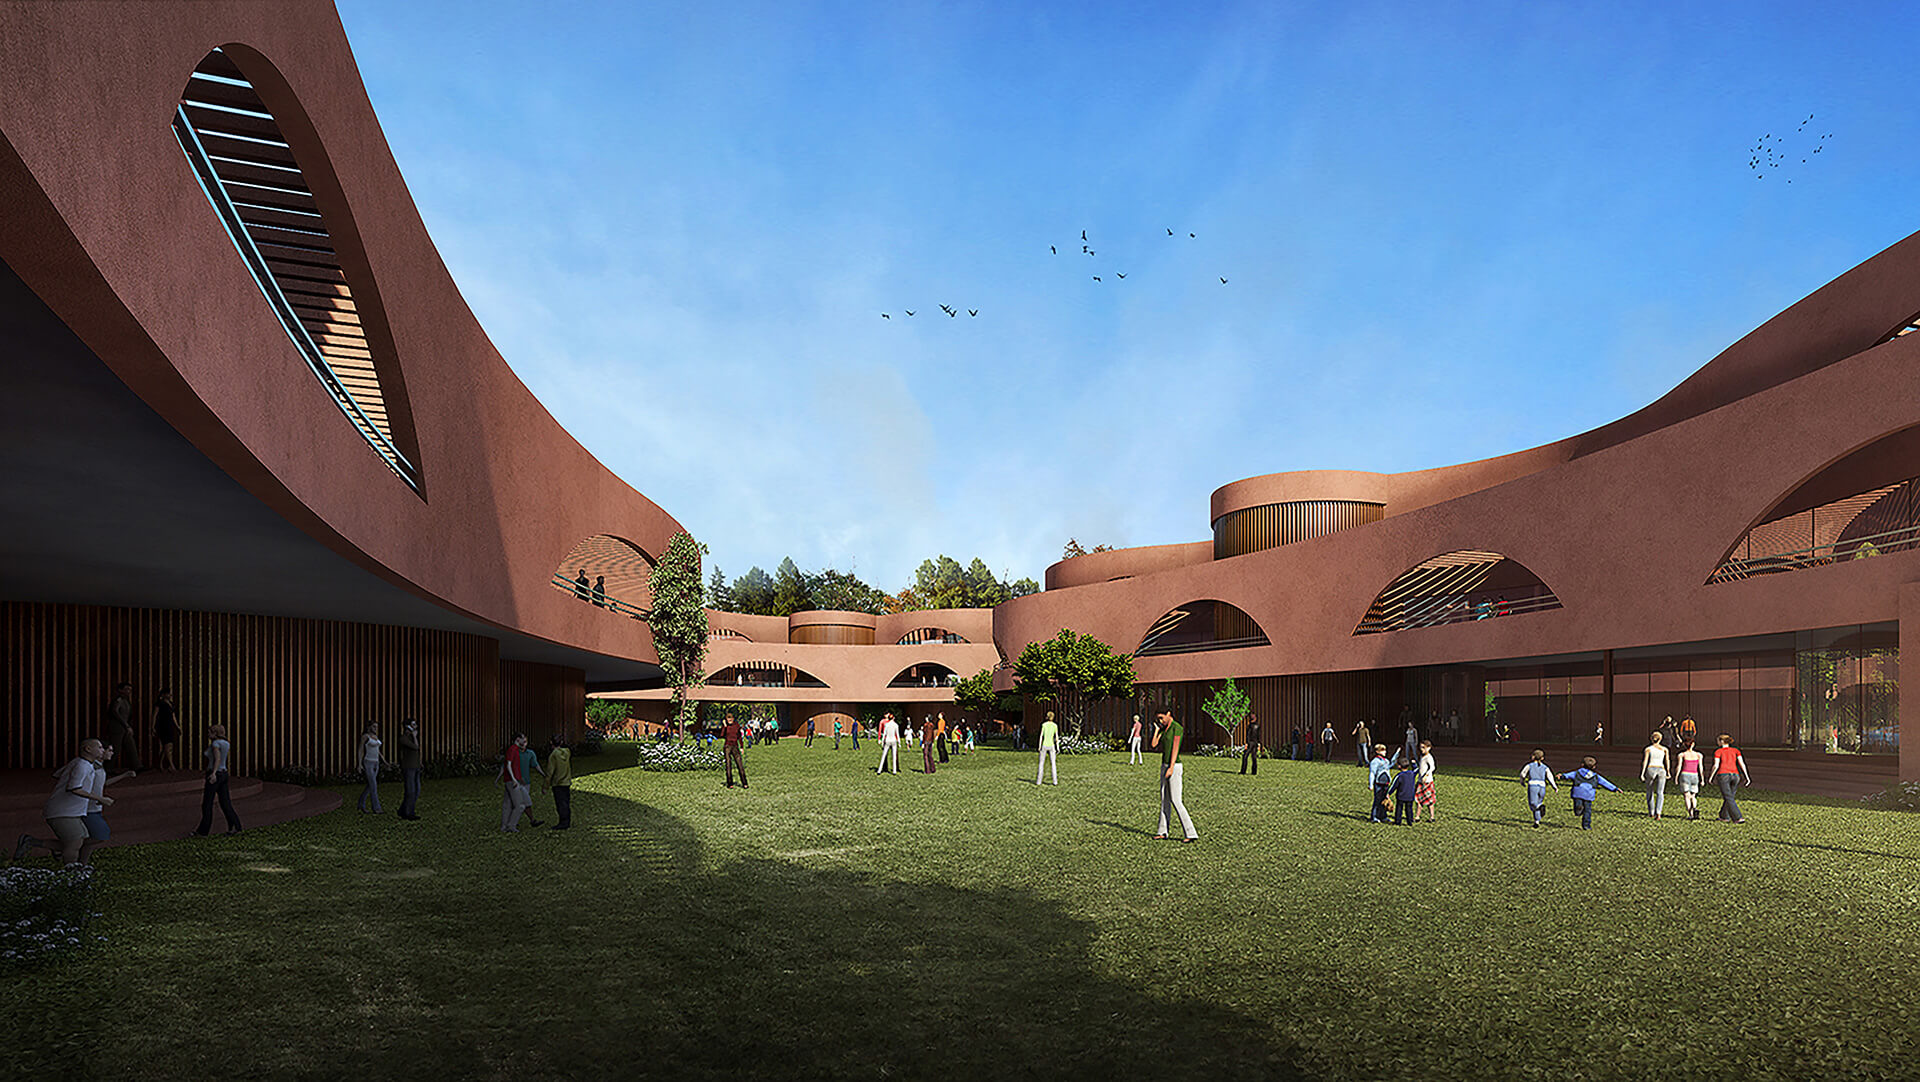 View from central courtyard towards the south of Learning Curves | Learning Curves in Raipur by Sanjay Puri Architects | STIRworld